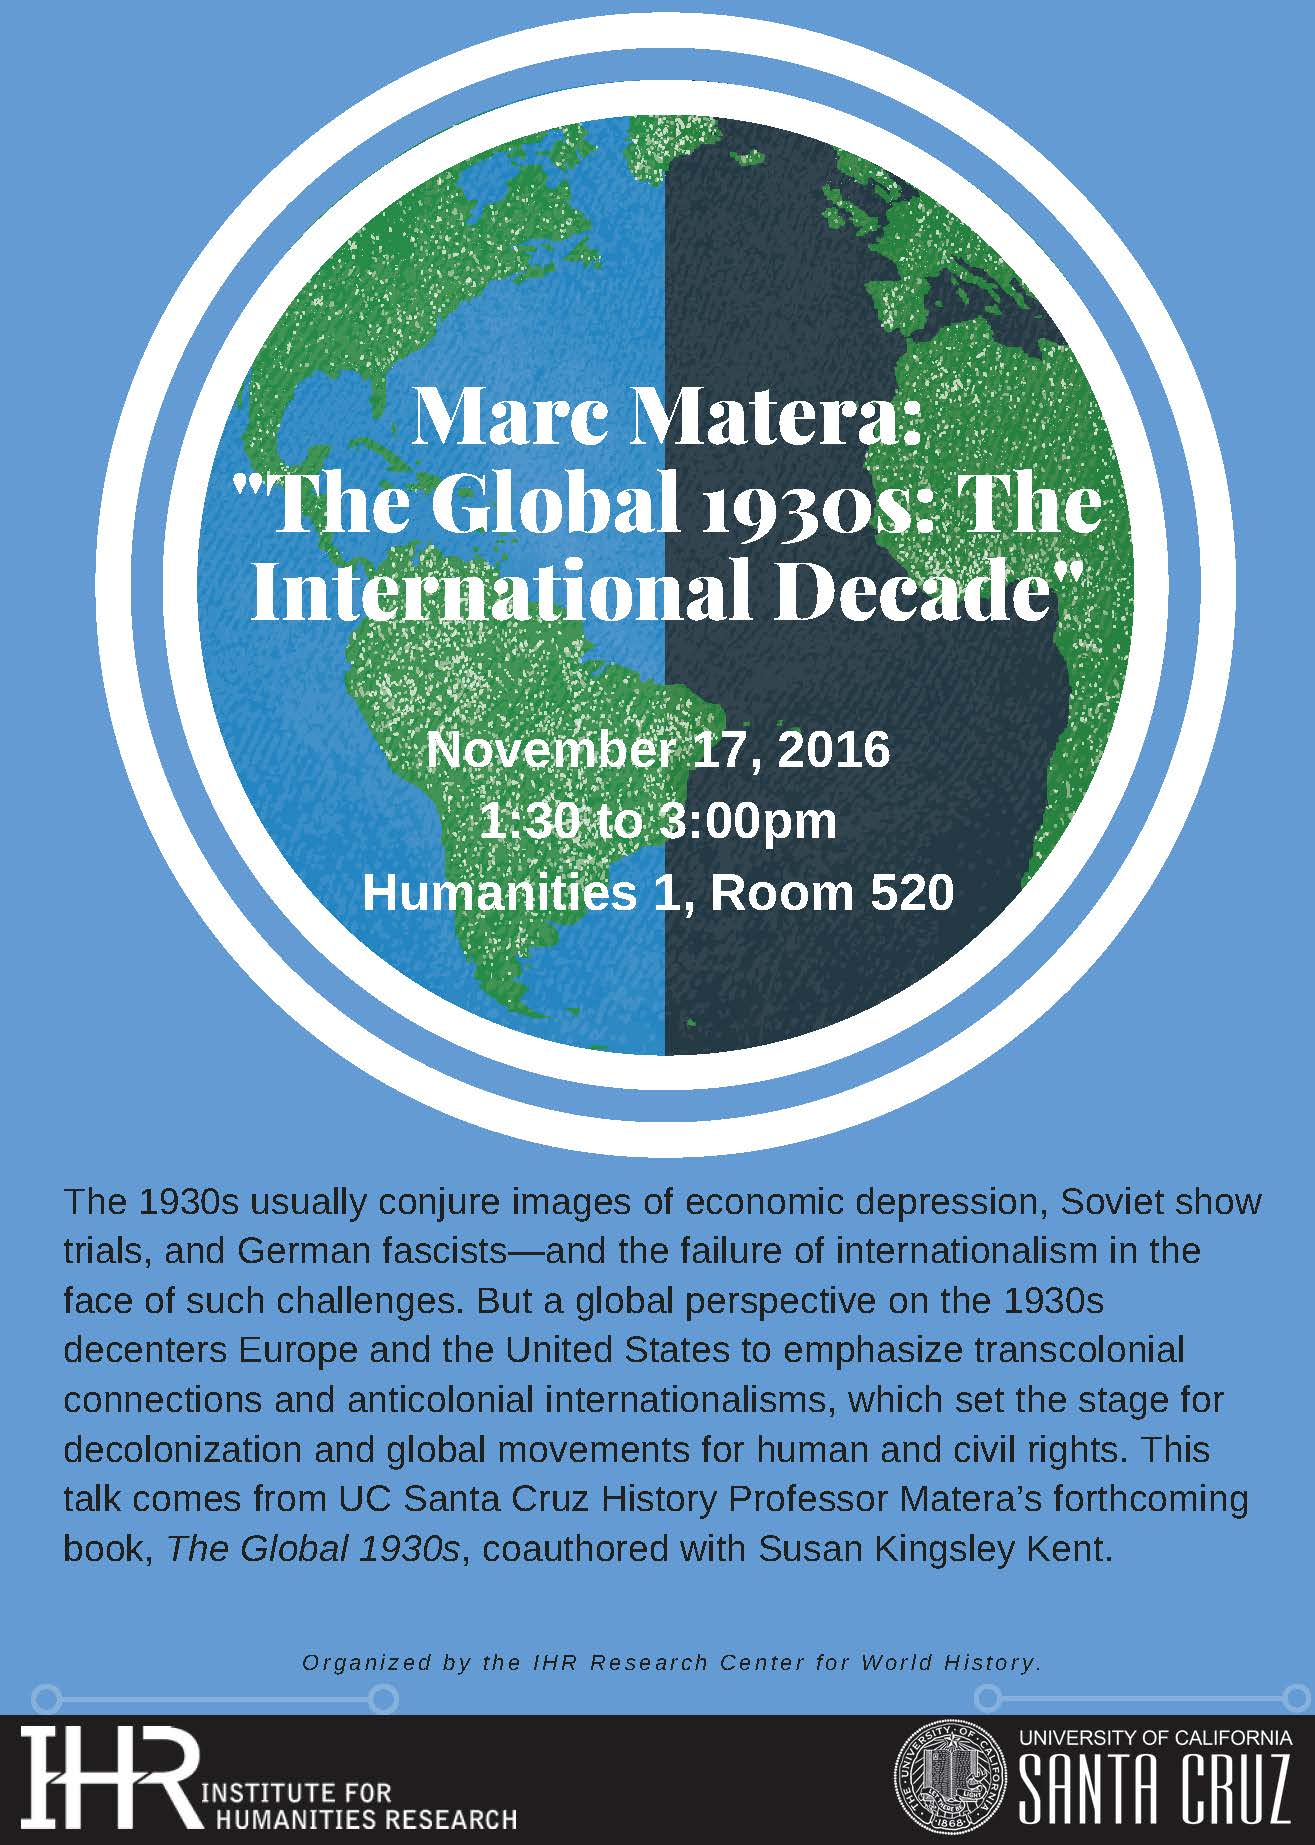 Marc Matera The Global 1930s event flyer